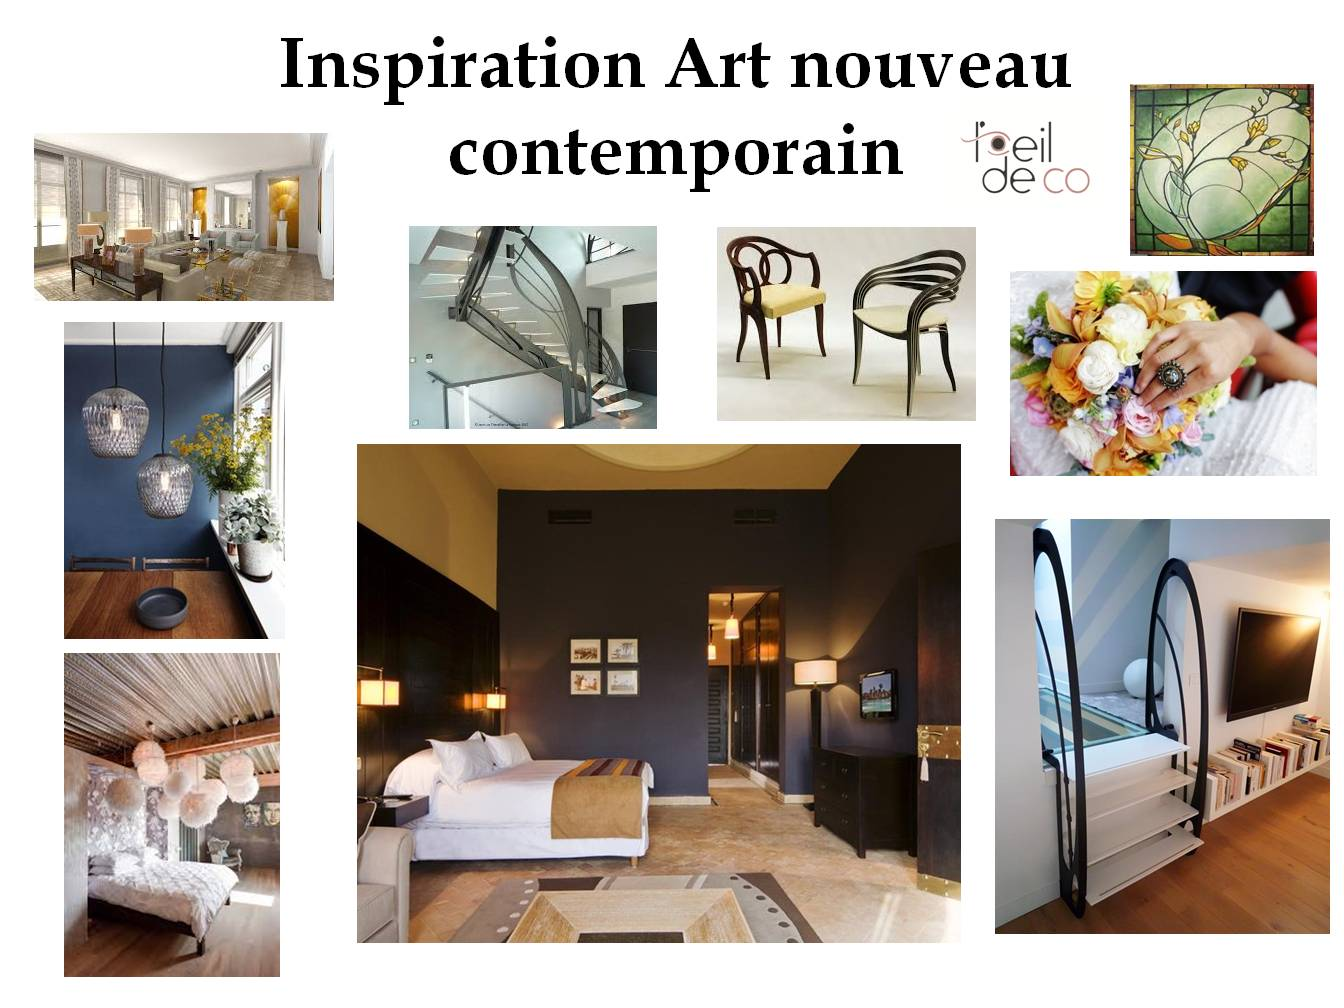 L 39 oeil de co planche tendance art nouveau contemporain l for Inspiration design d interieur